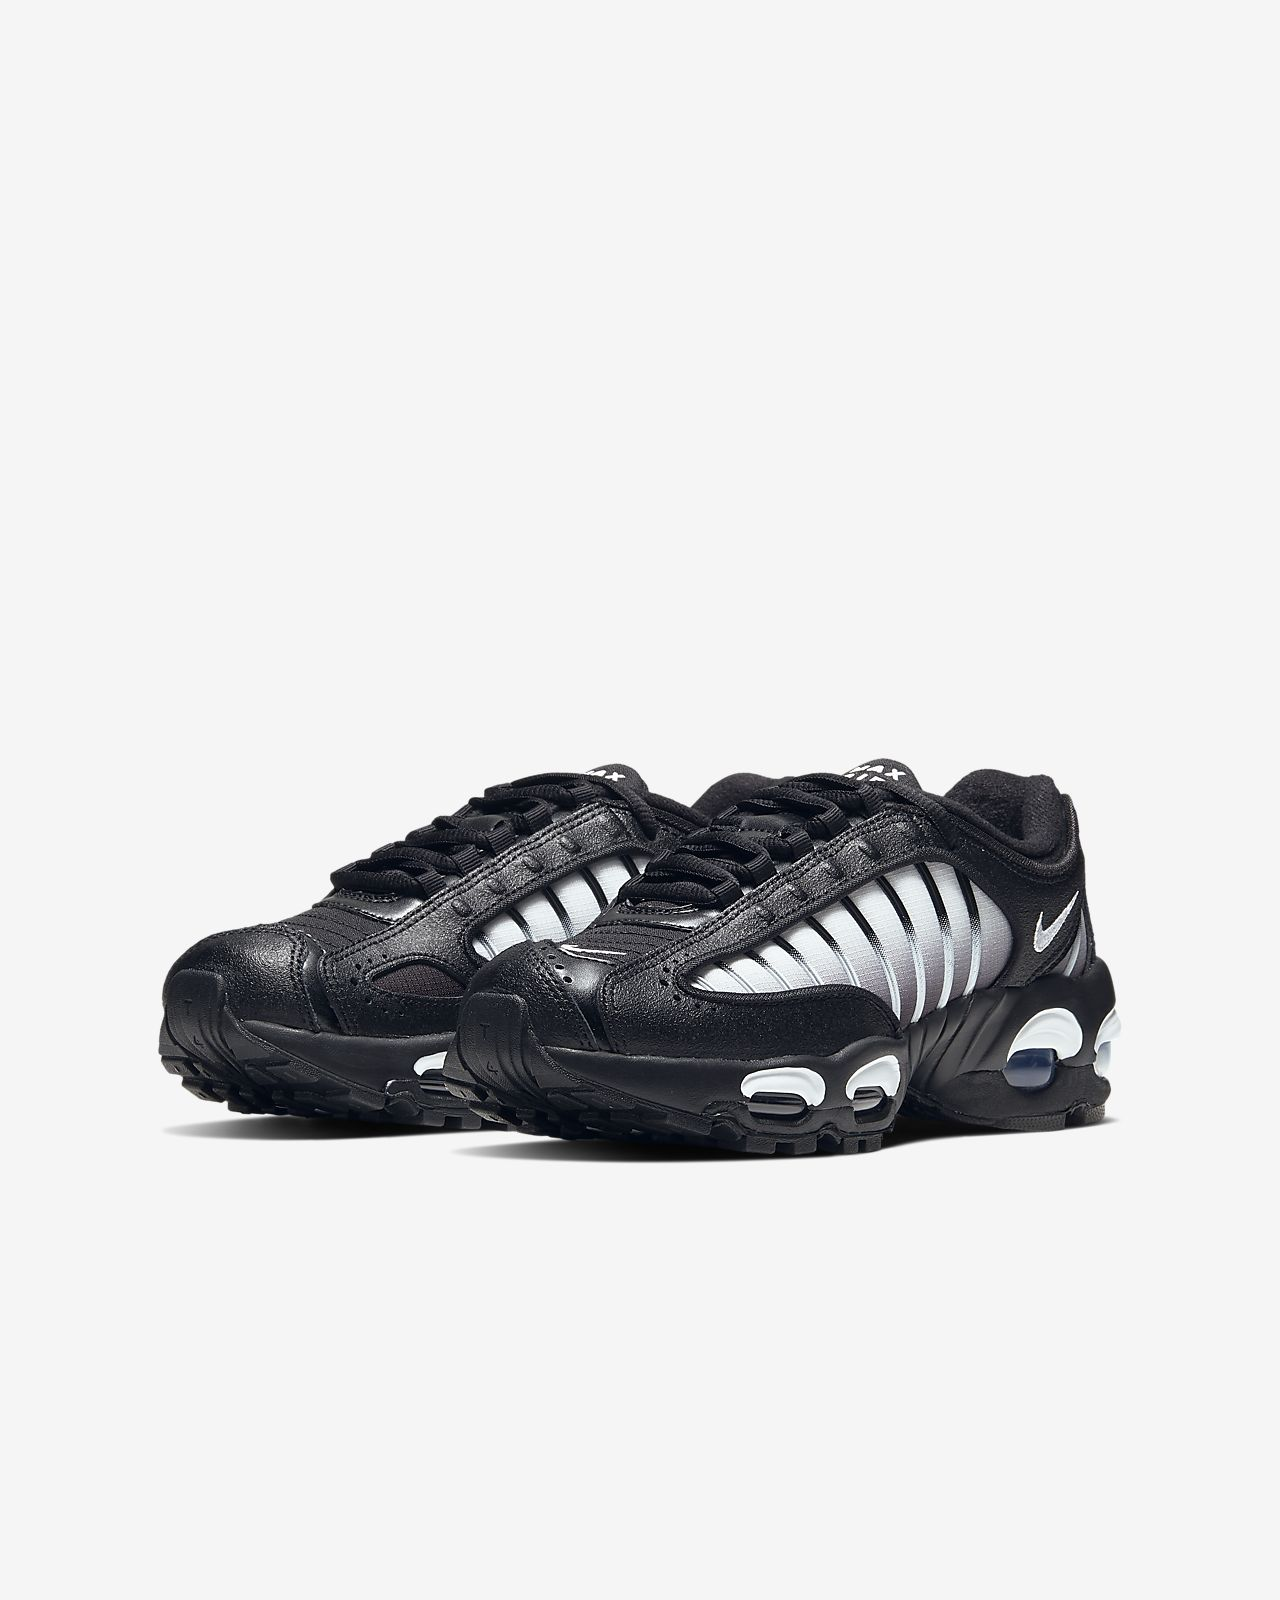 Real Lett Nike Air Max Tailwind 4 Dame Royal E Nike Barn